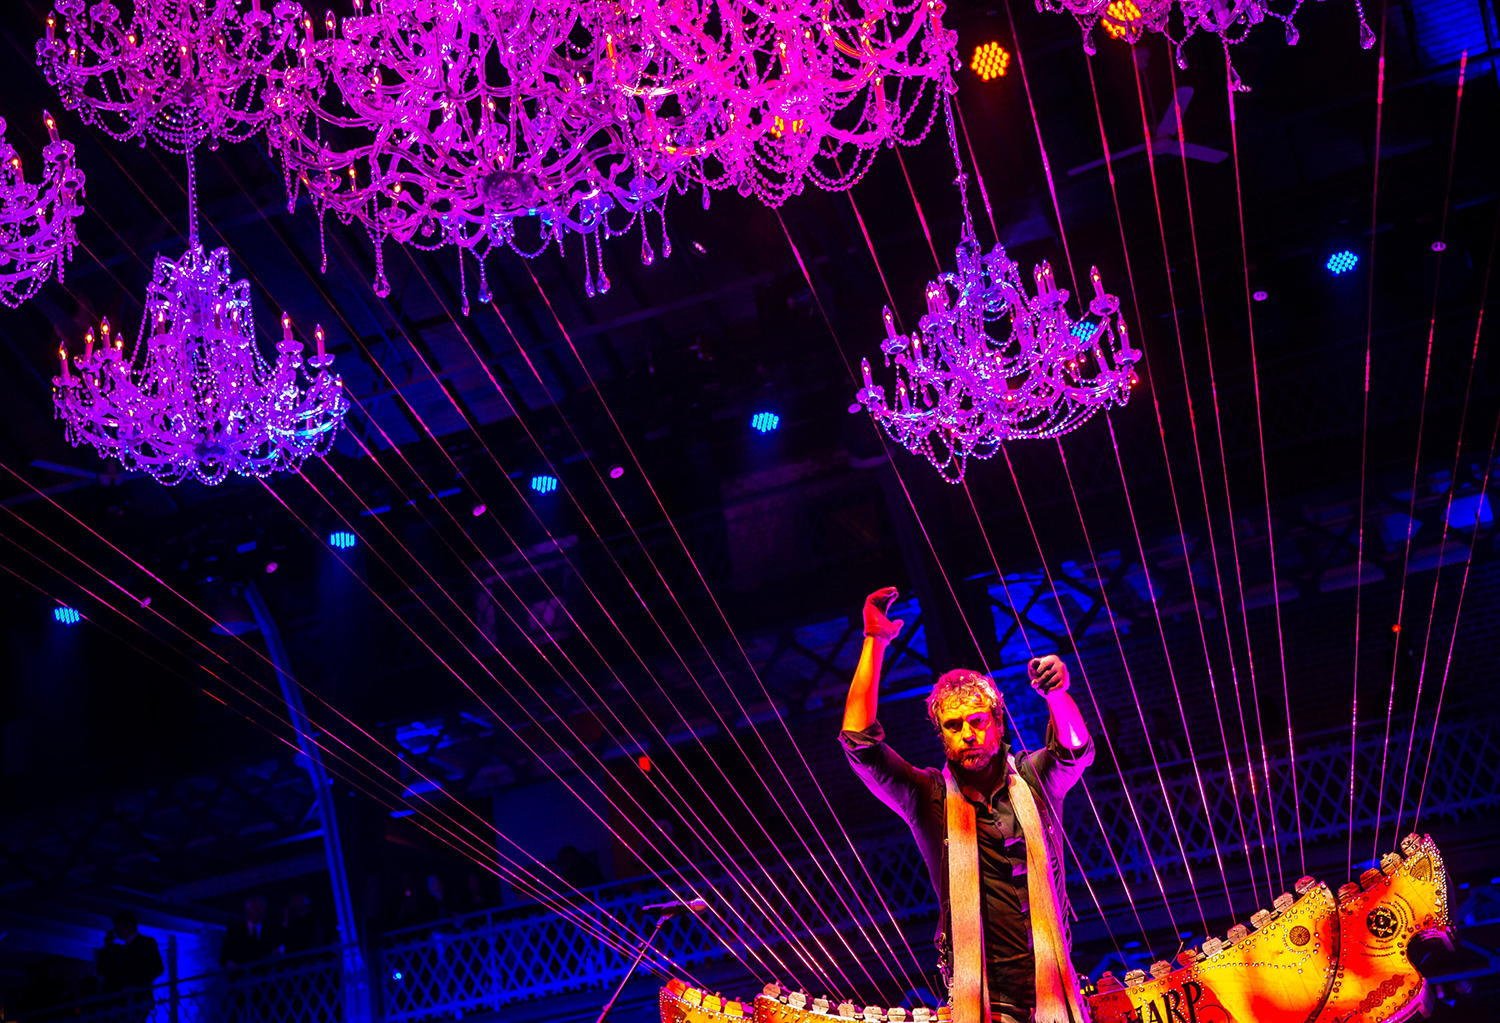 William Close performs on his Earth Harp Ensemble built into the structure of the Exposition Building during Gov. J.B. Pritzker's Inaugural Ball at the Exposition Building on the Illinois State Fairgrounds, Monday, Jan. 14, 2019, in Springfield, Ill. [Justin L. Fowler/The State Journal-Register]